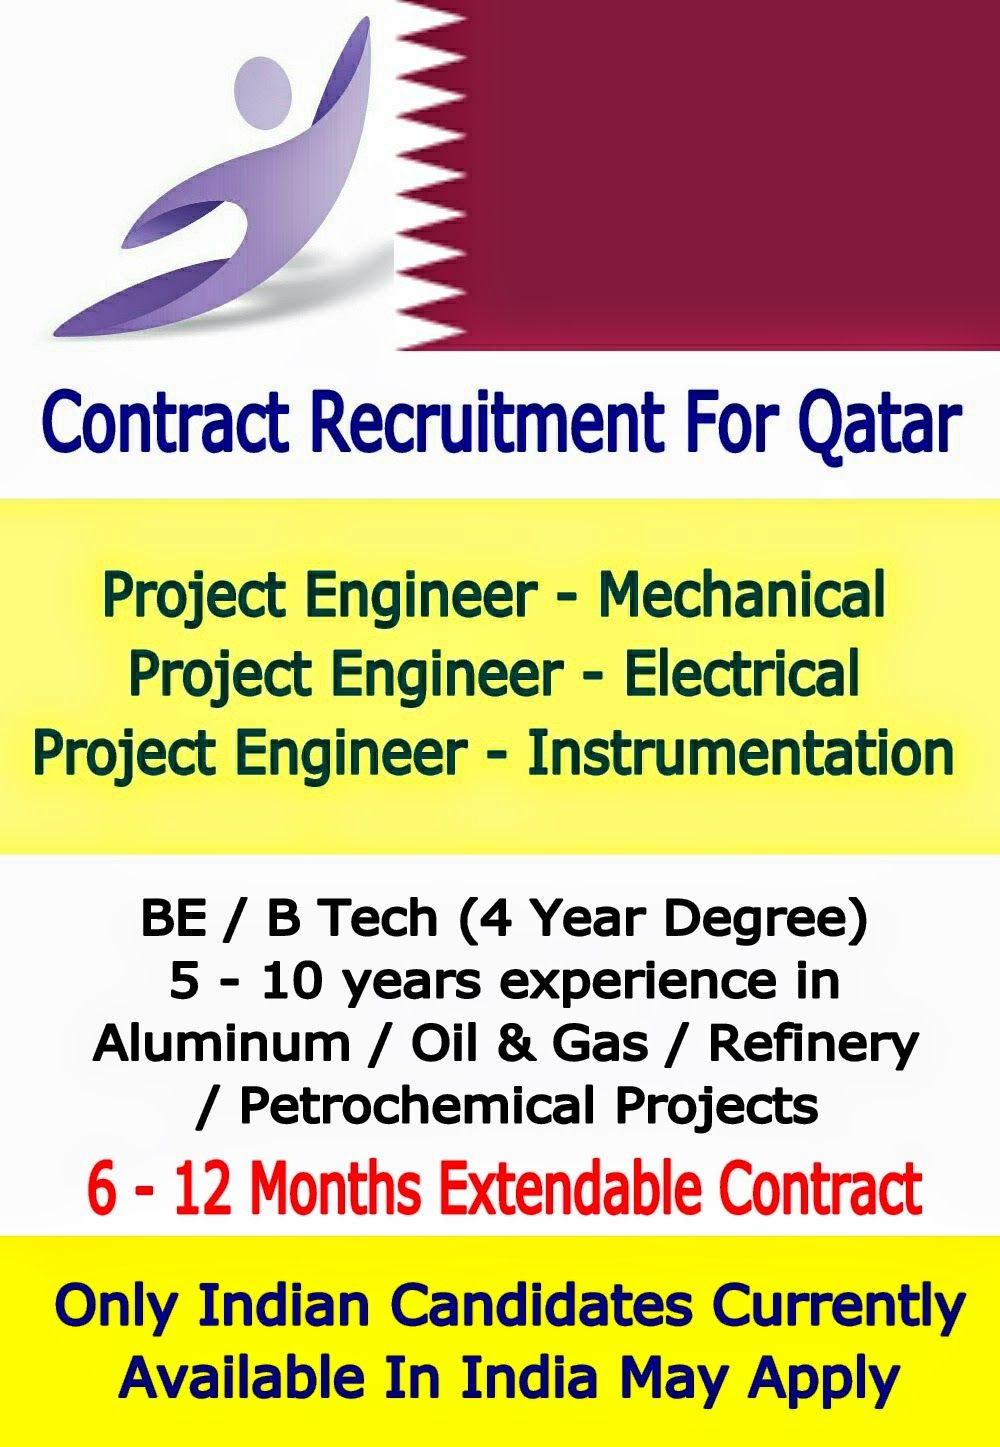 Electrical And Instrumentation Projects In Uae Wiring Diagram Jeep Cherokee Engine Bay Project Pinterest Engineers Mechanical Instr Oil Gas Rh Com Business Dubai National Day